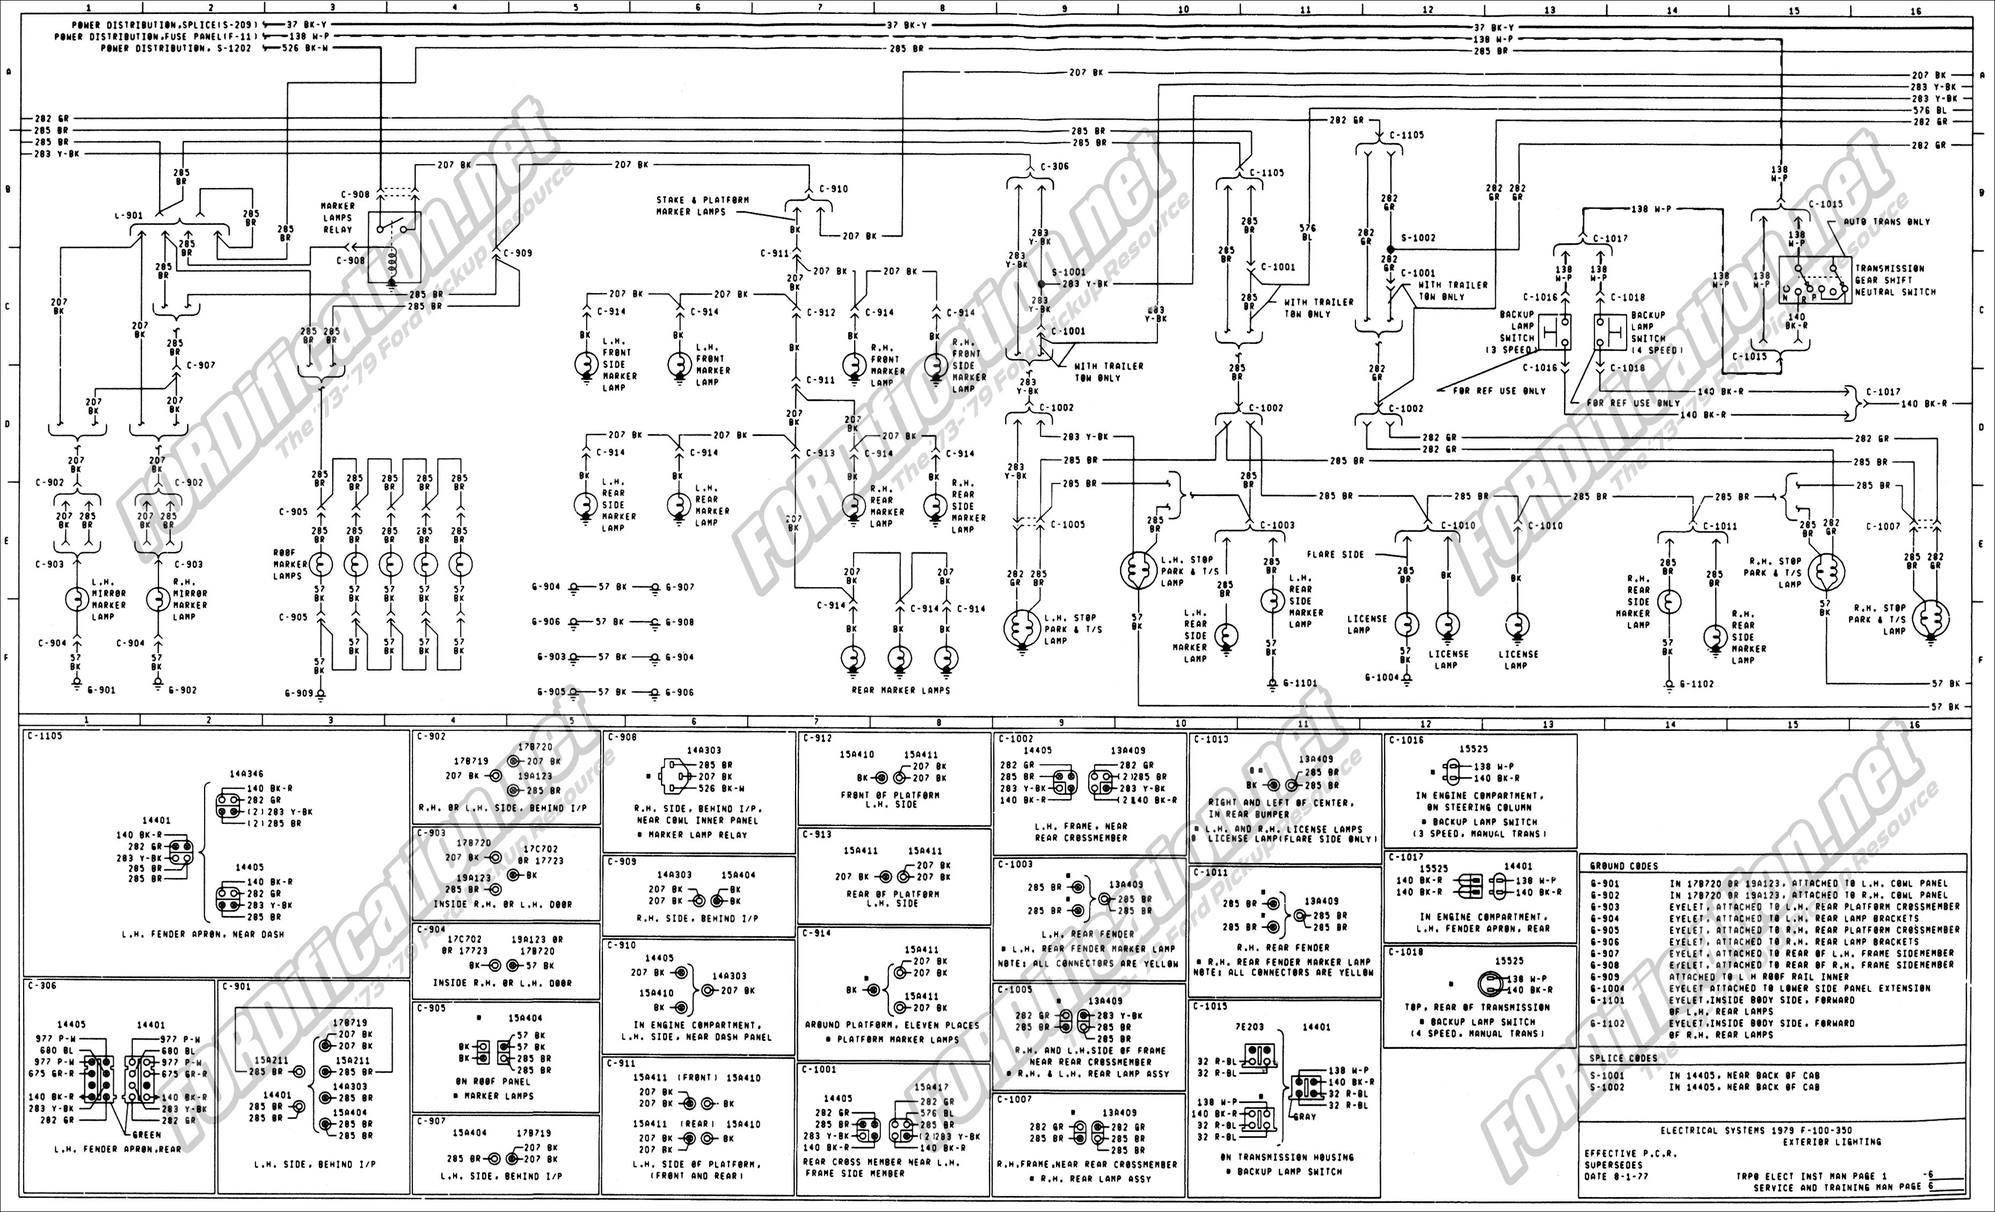 02 Ford F 250 Fuse Box Diagram Ford F-250 Ignition Switch